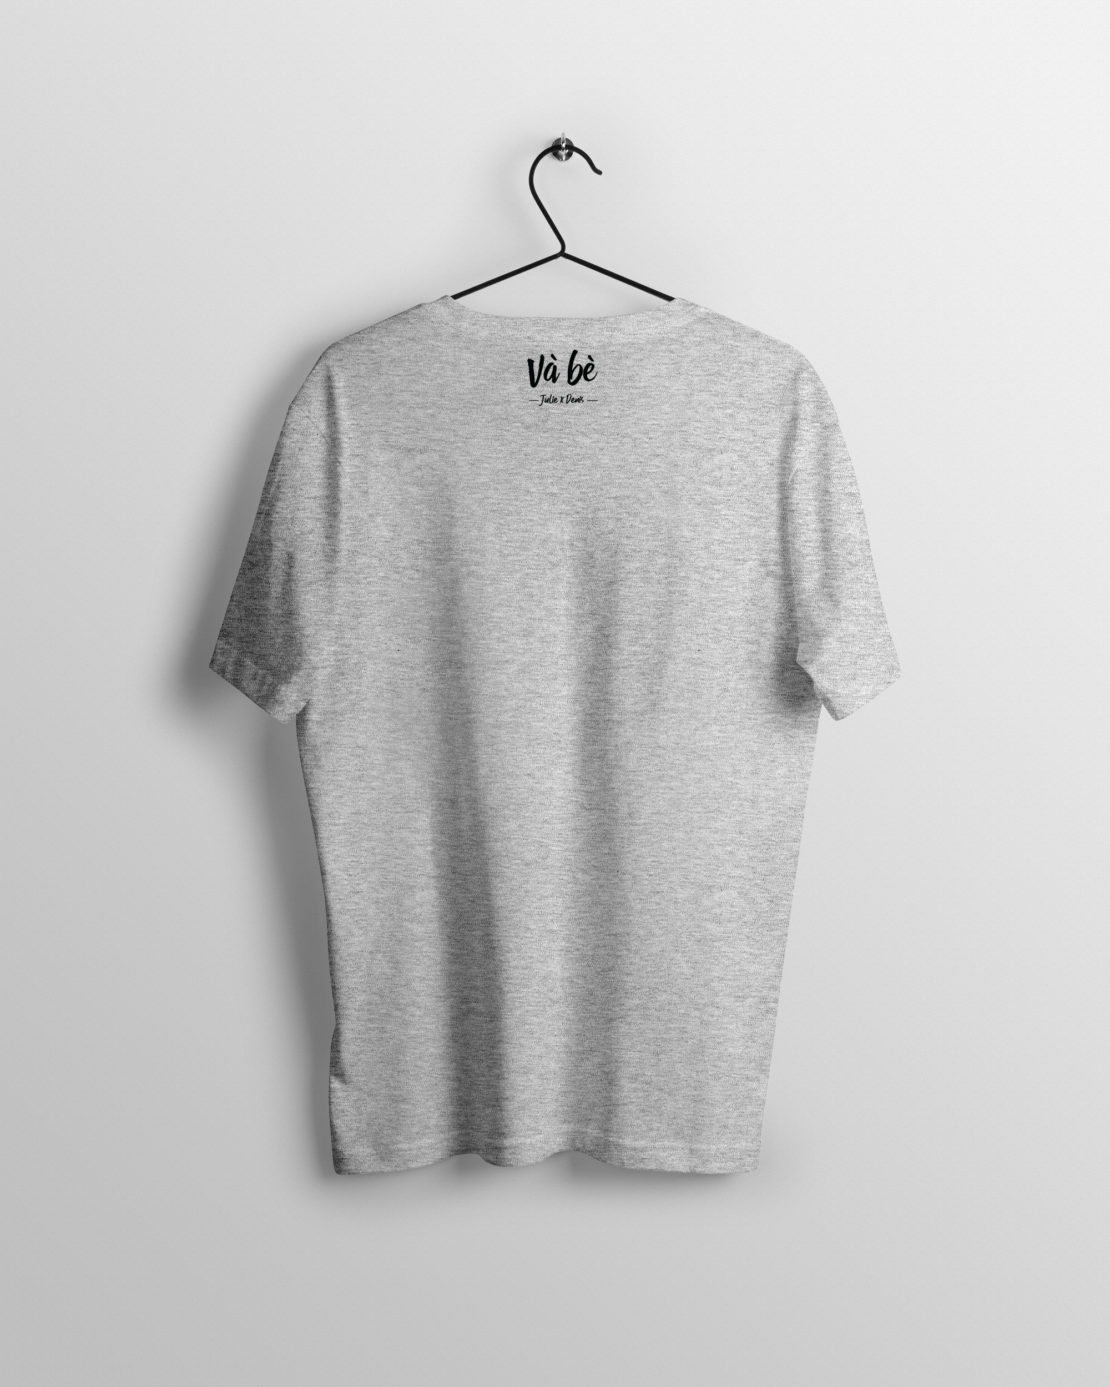 T-SHIRT-HOMME-VAMOS-(MARQUE-DOS)-HEATHER-GREY